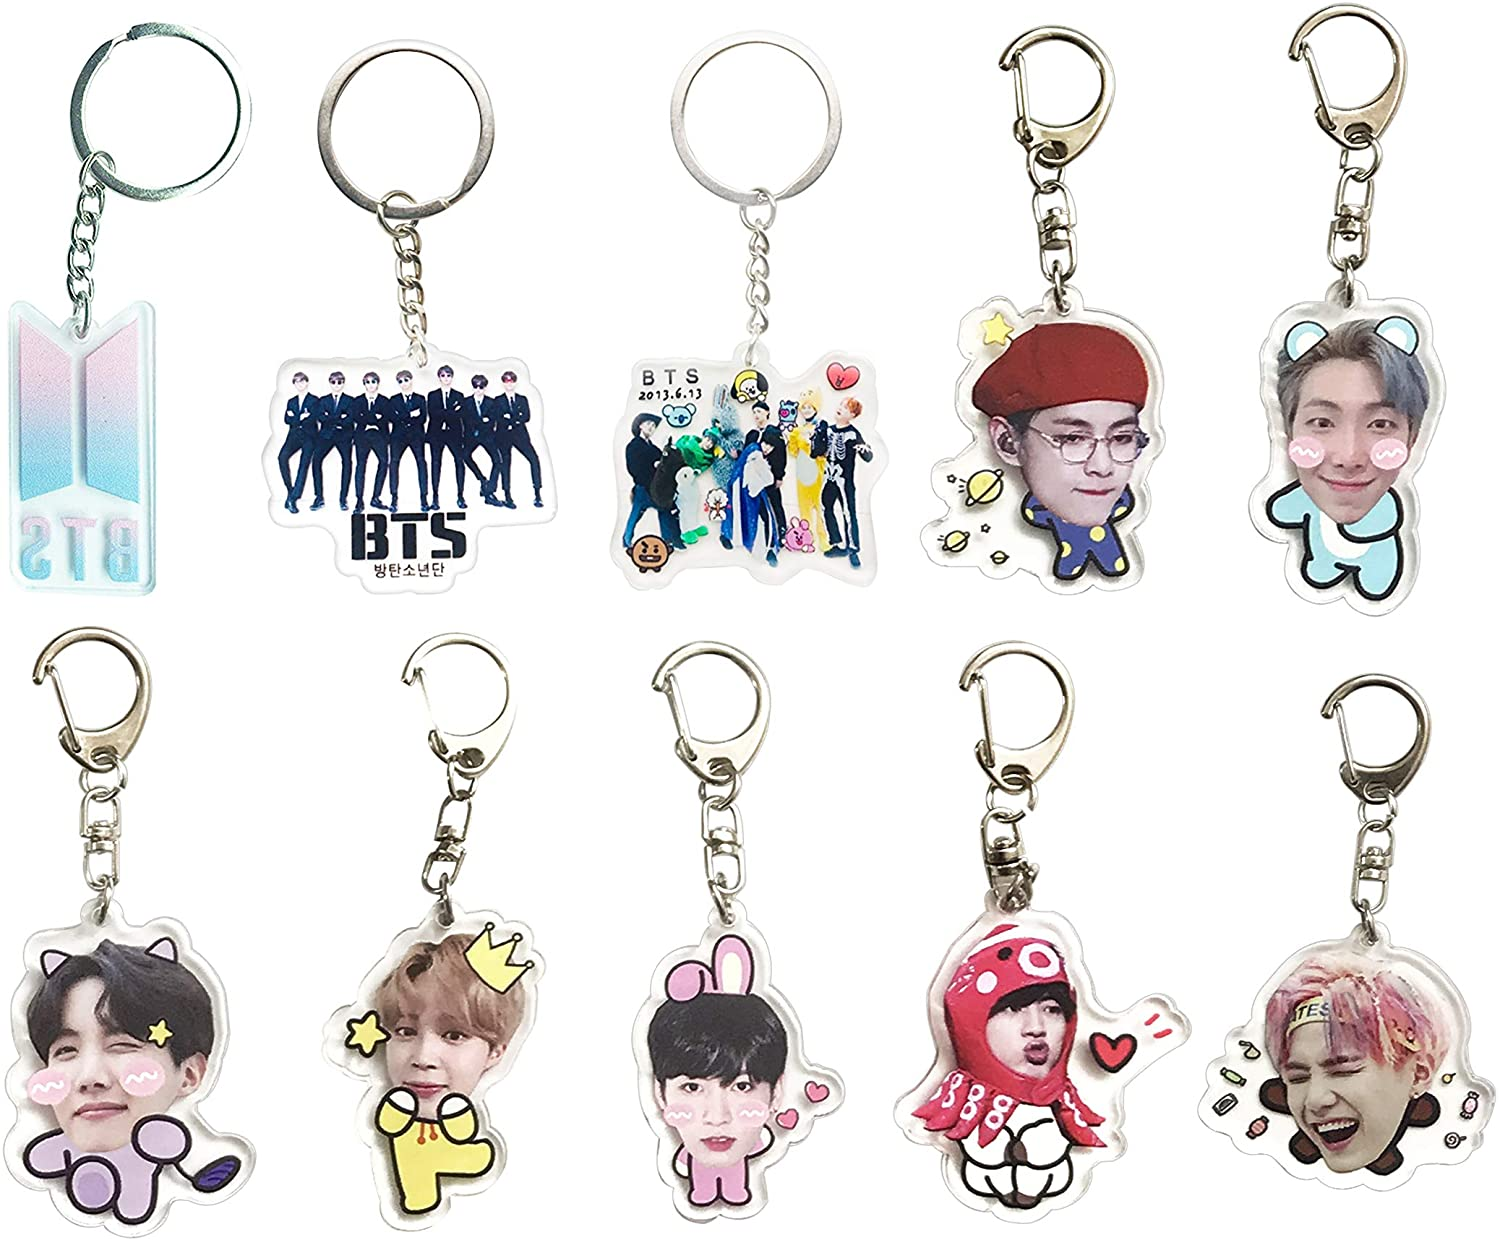 BTS Cartoon Acrylic Keychain Bangtan Boys Key Ring Hot Gift for Army,Transparent, Double-Sided Visible (BTS-birth)